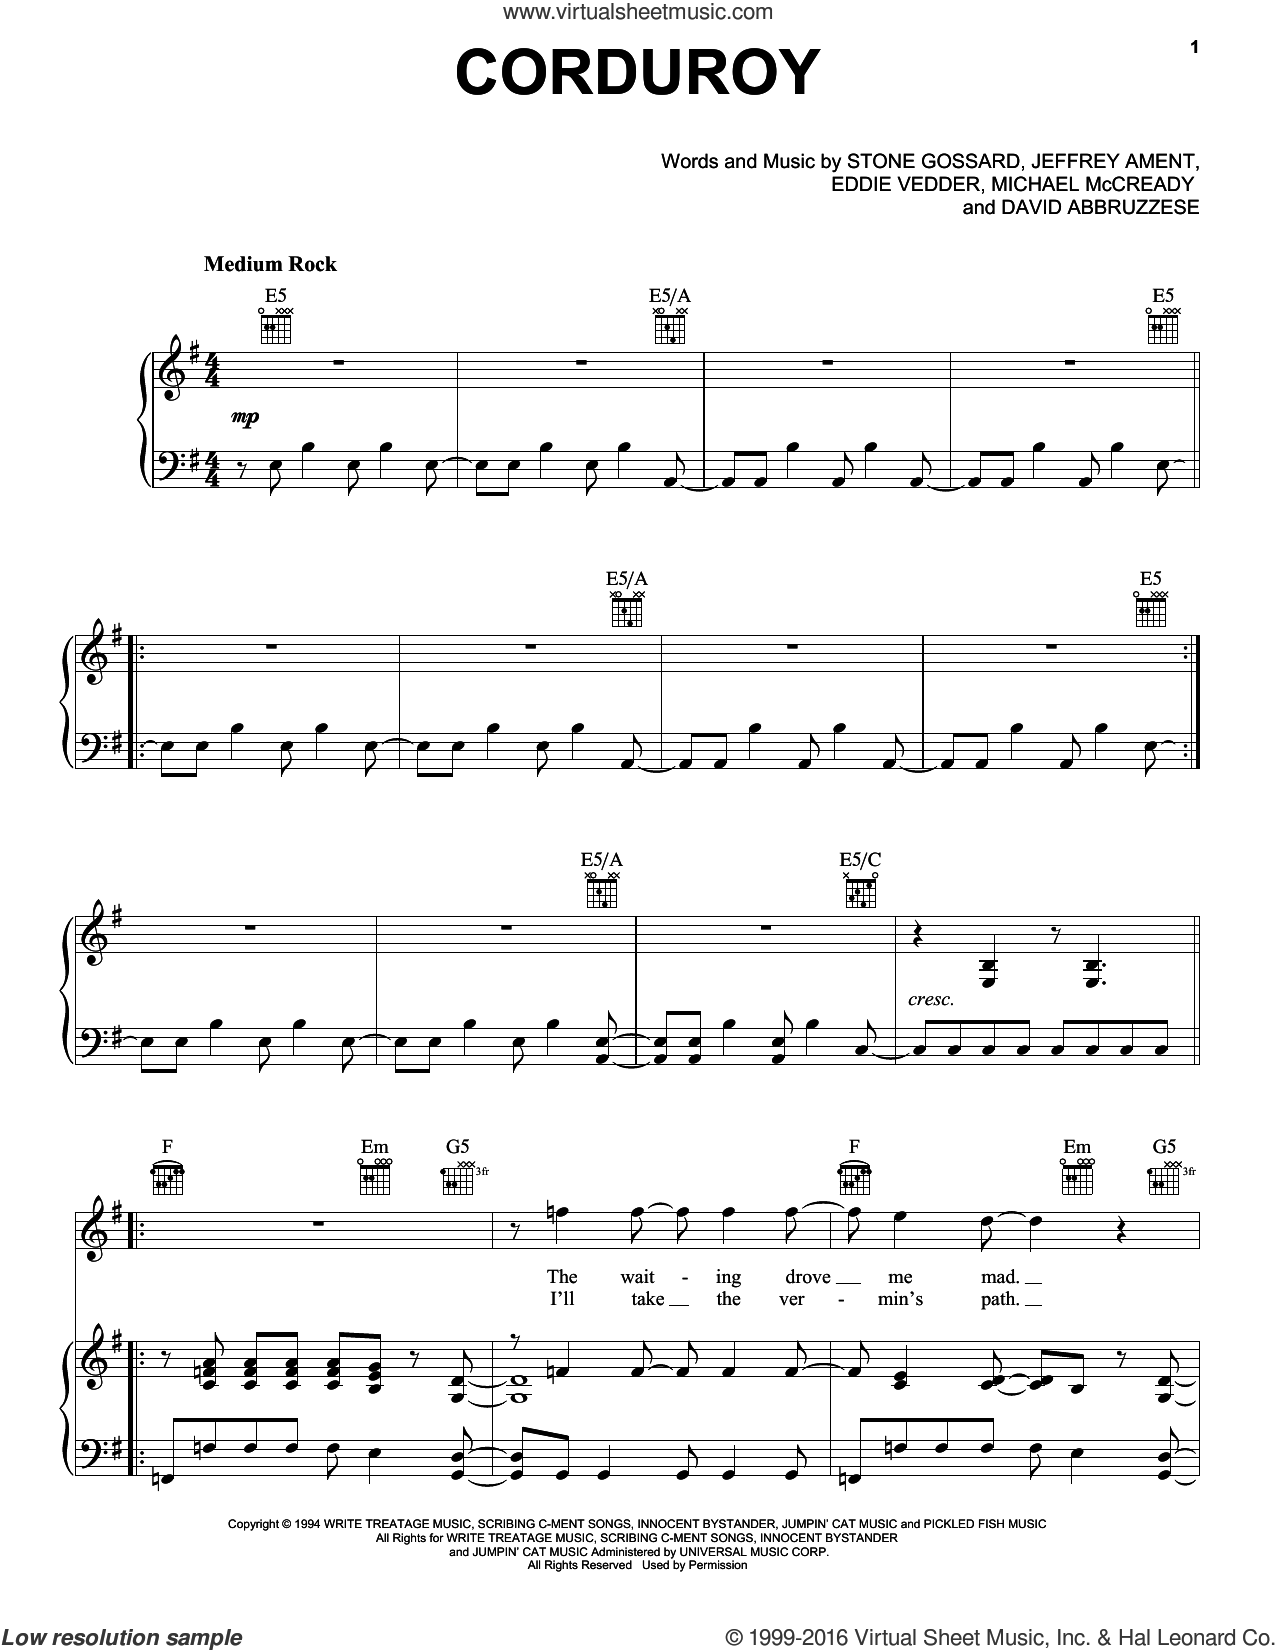 Corduroy sheet music for voice, piano or guitar by Pearl Jam, David Abbruzzese, Eddie Vedder, Jeff Ament, Michael McCready and Stone Gossard, intermediate skill level